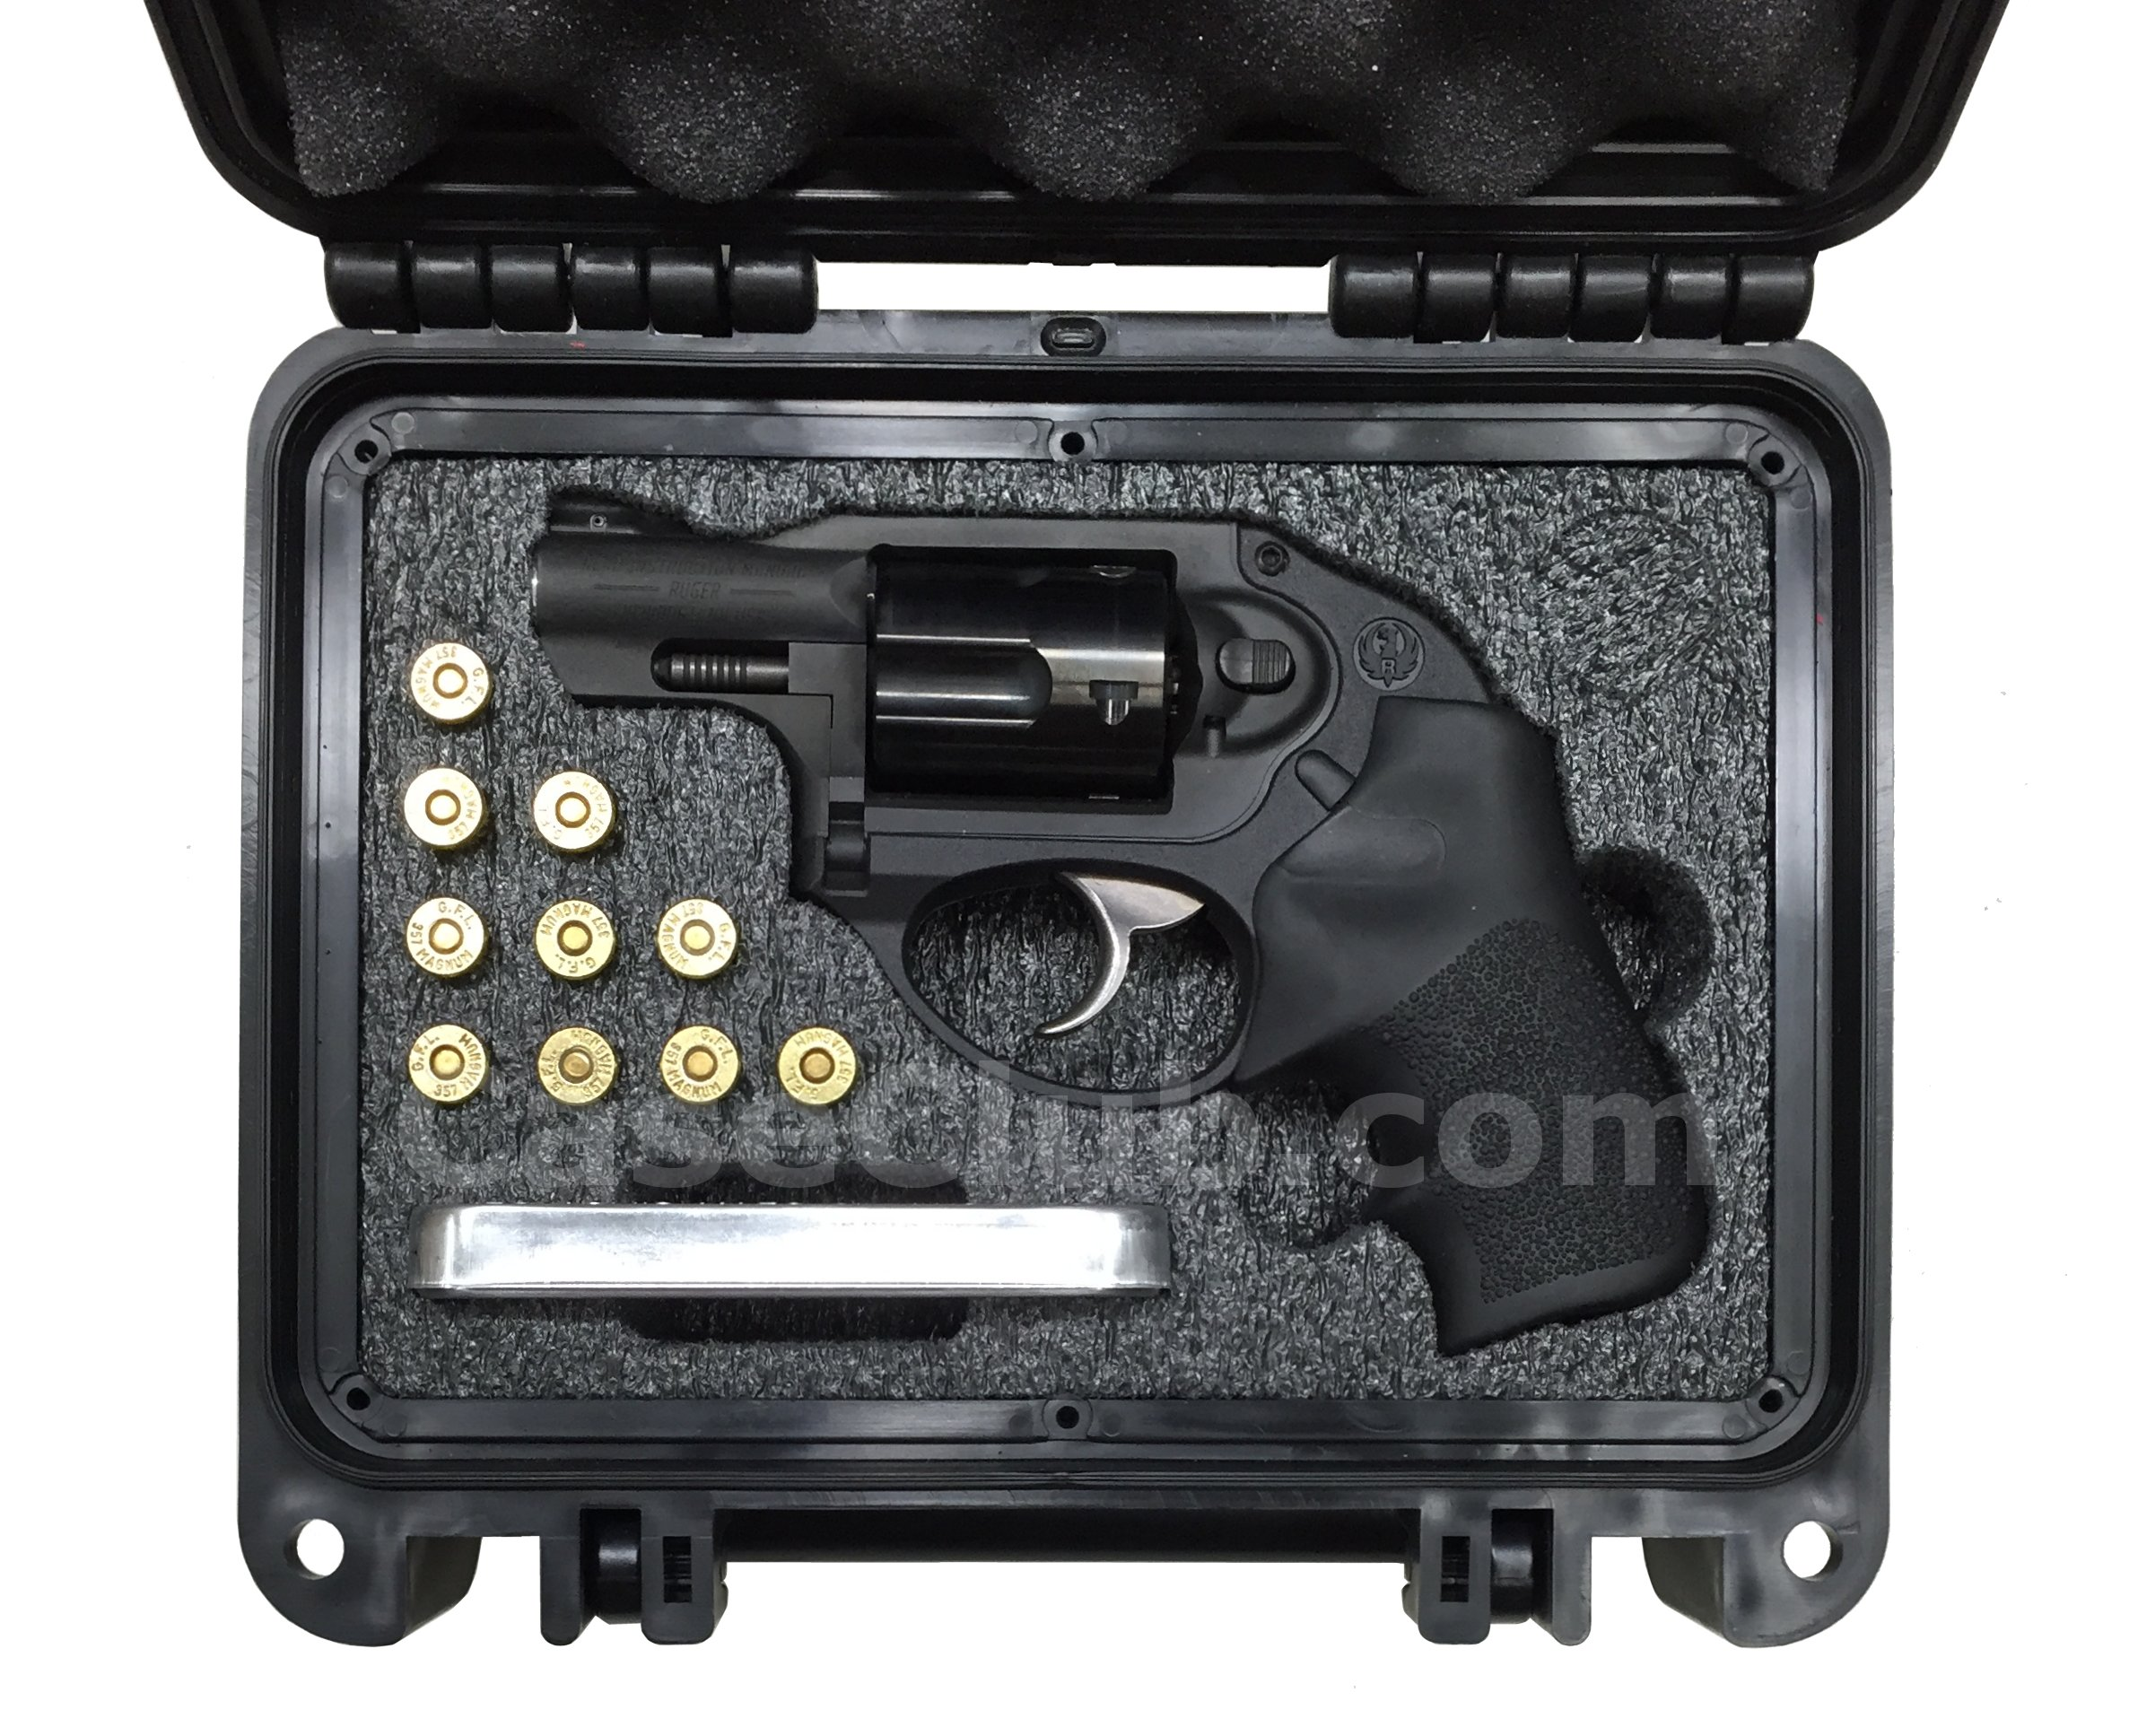 Seahorse 120 Case Custom Foam Example: Ruger LCR Revolver Case